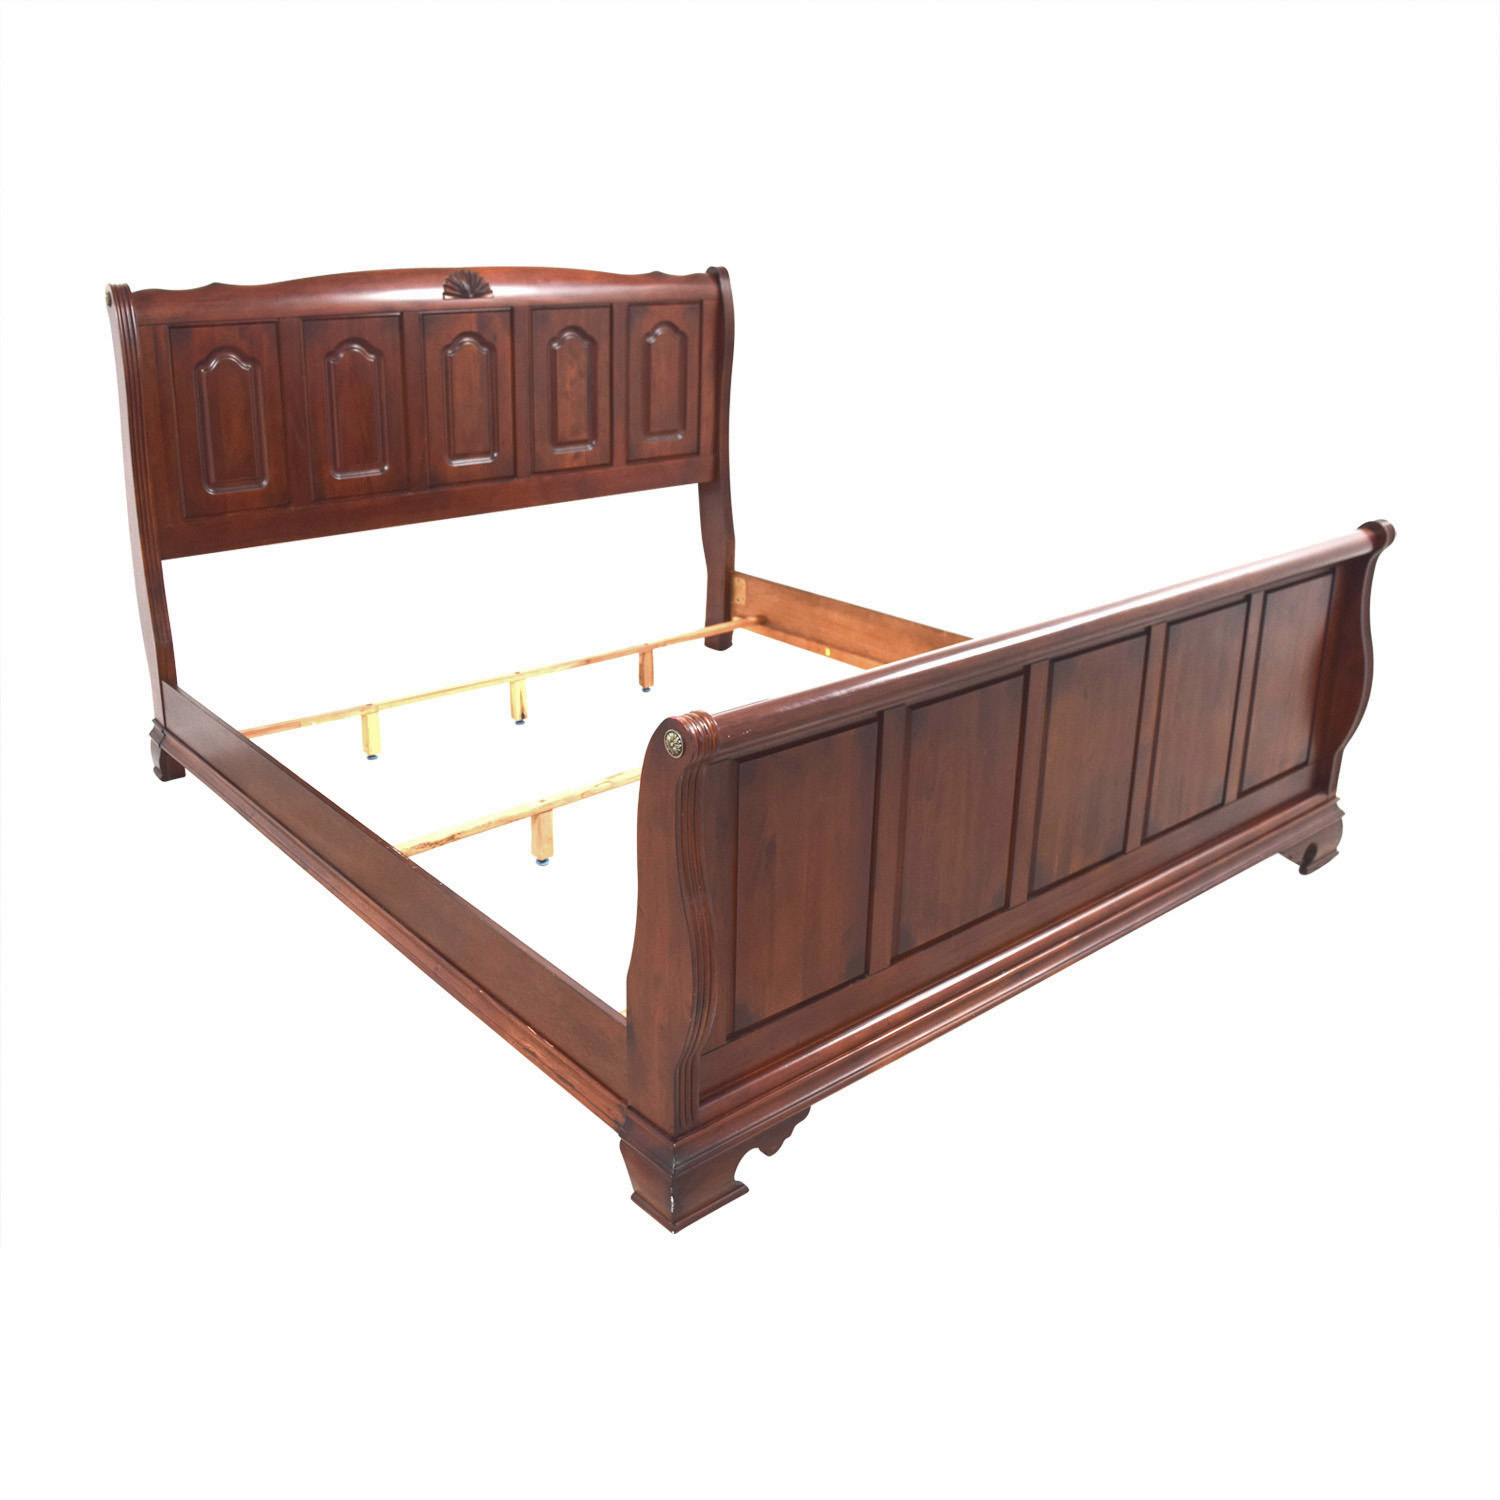 buy Bobs Furniture Bobs Furniture Mahogany King Sleigh Bed online